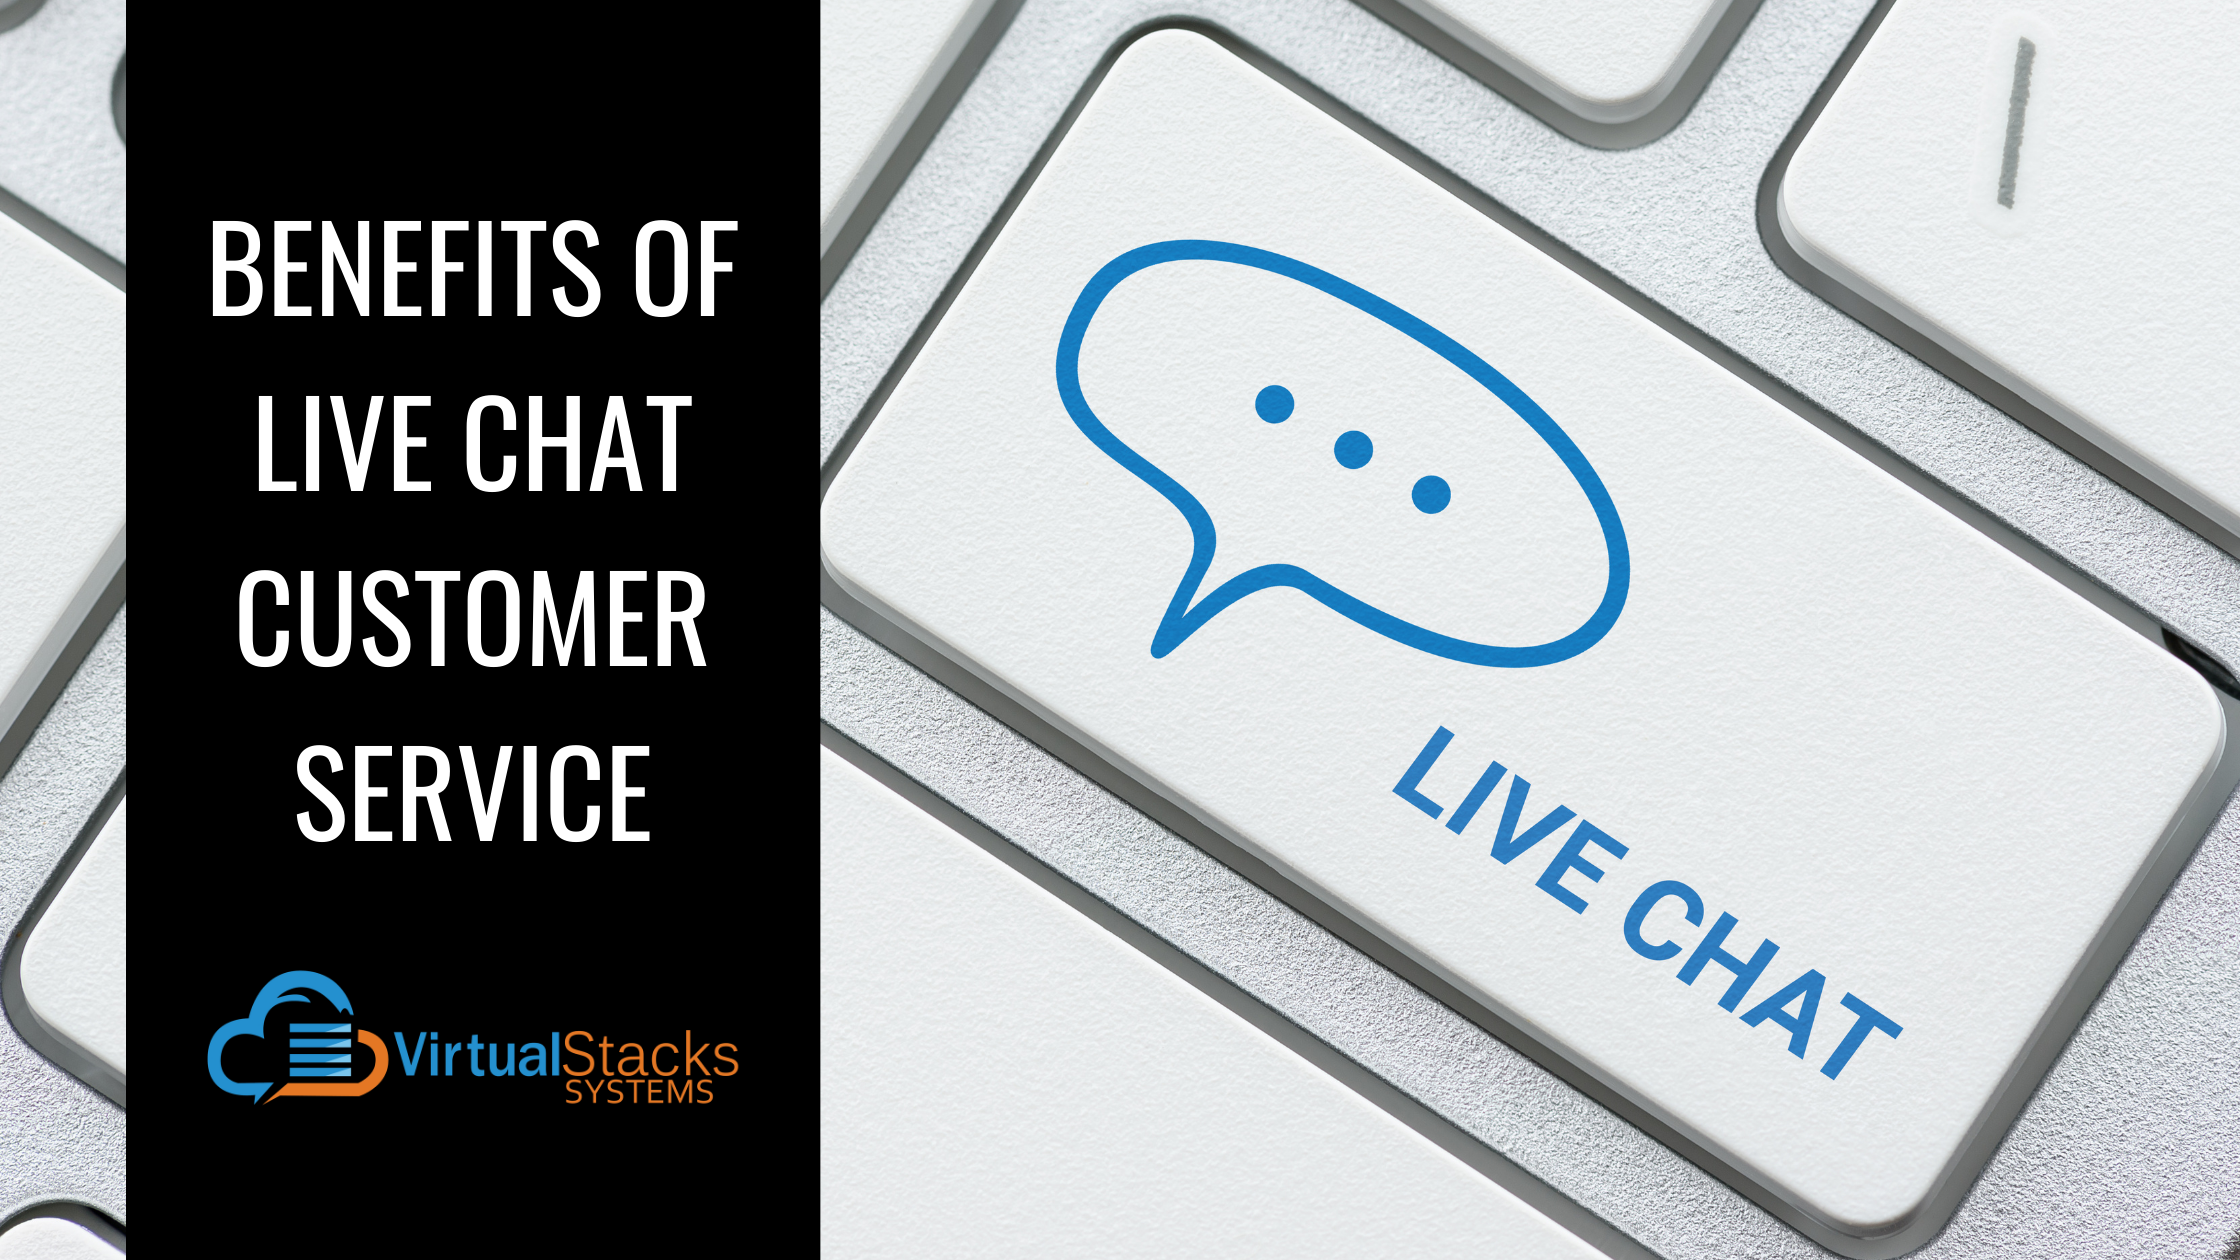 Benefits of Live Chat Customer Service